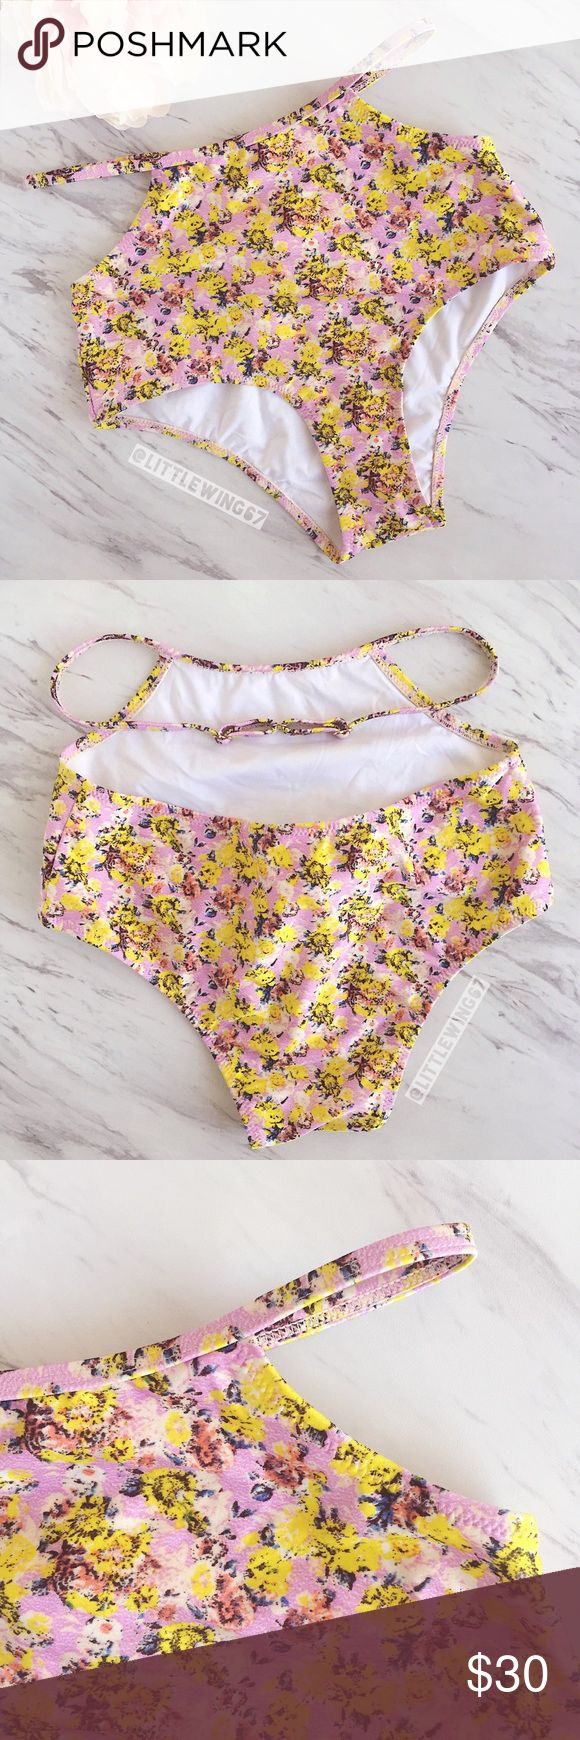 Somedays Lovin floral high-waisted bikini bottoms Somedays Lovin | These high-waisted bikini bottoms feature a fun floral print in pink and yellow. Cut-out detail with adjustable waist strap. Pair these retro-inspired bottoms with your favorite bikini top and a fluttery off-the-shoulder top for a beach-ready look! Never worn; hygienic liner still intact. NWOT.   Size: XS Somedays Lovin Swim Bikinis